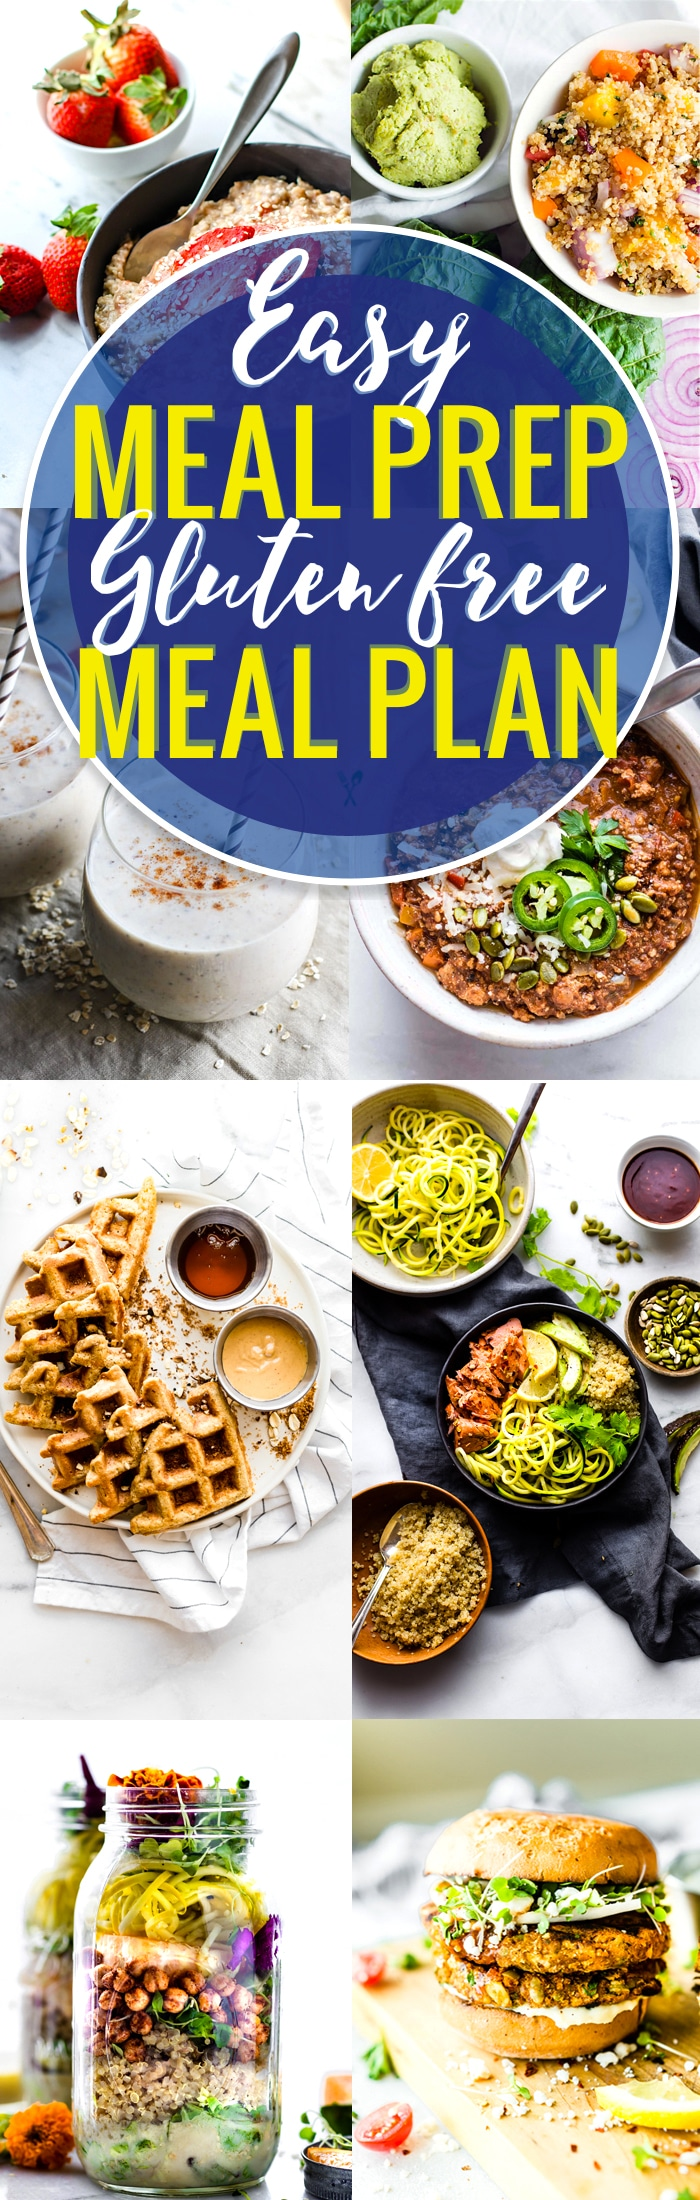 These easy meal prep recipes are perfect for a gluten free meal plan. By prepping ahead, you can prepare healthy gluten-free meals easily, without a hassle! Use these healthy and easy meal prep recipes to have breakfast, lunch, dinner, and snacks or desserts ready to go when you are! www.cottercrunch.com